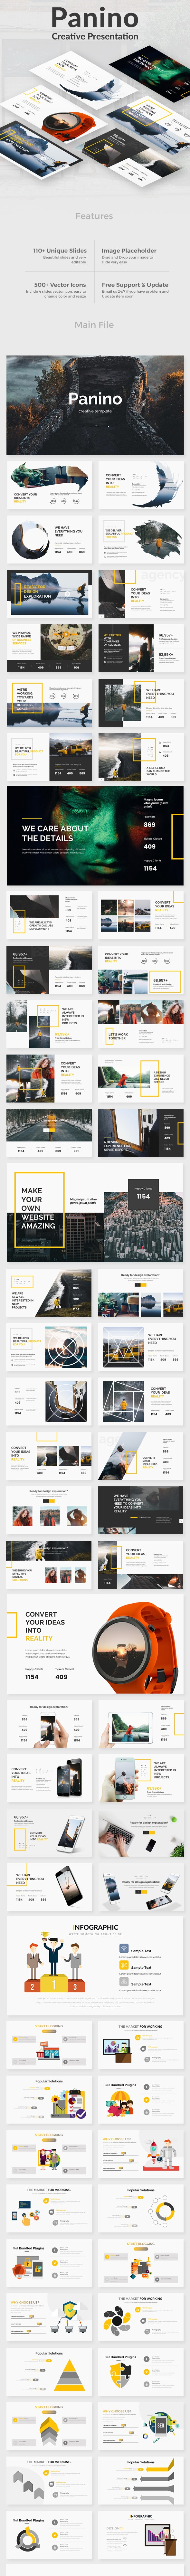 Panino Creative Design Google Slide Template